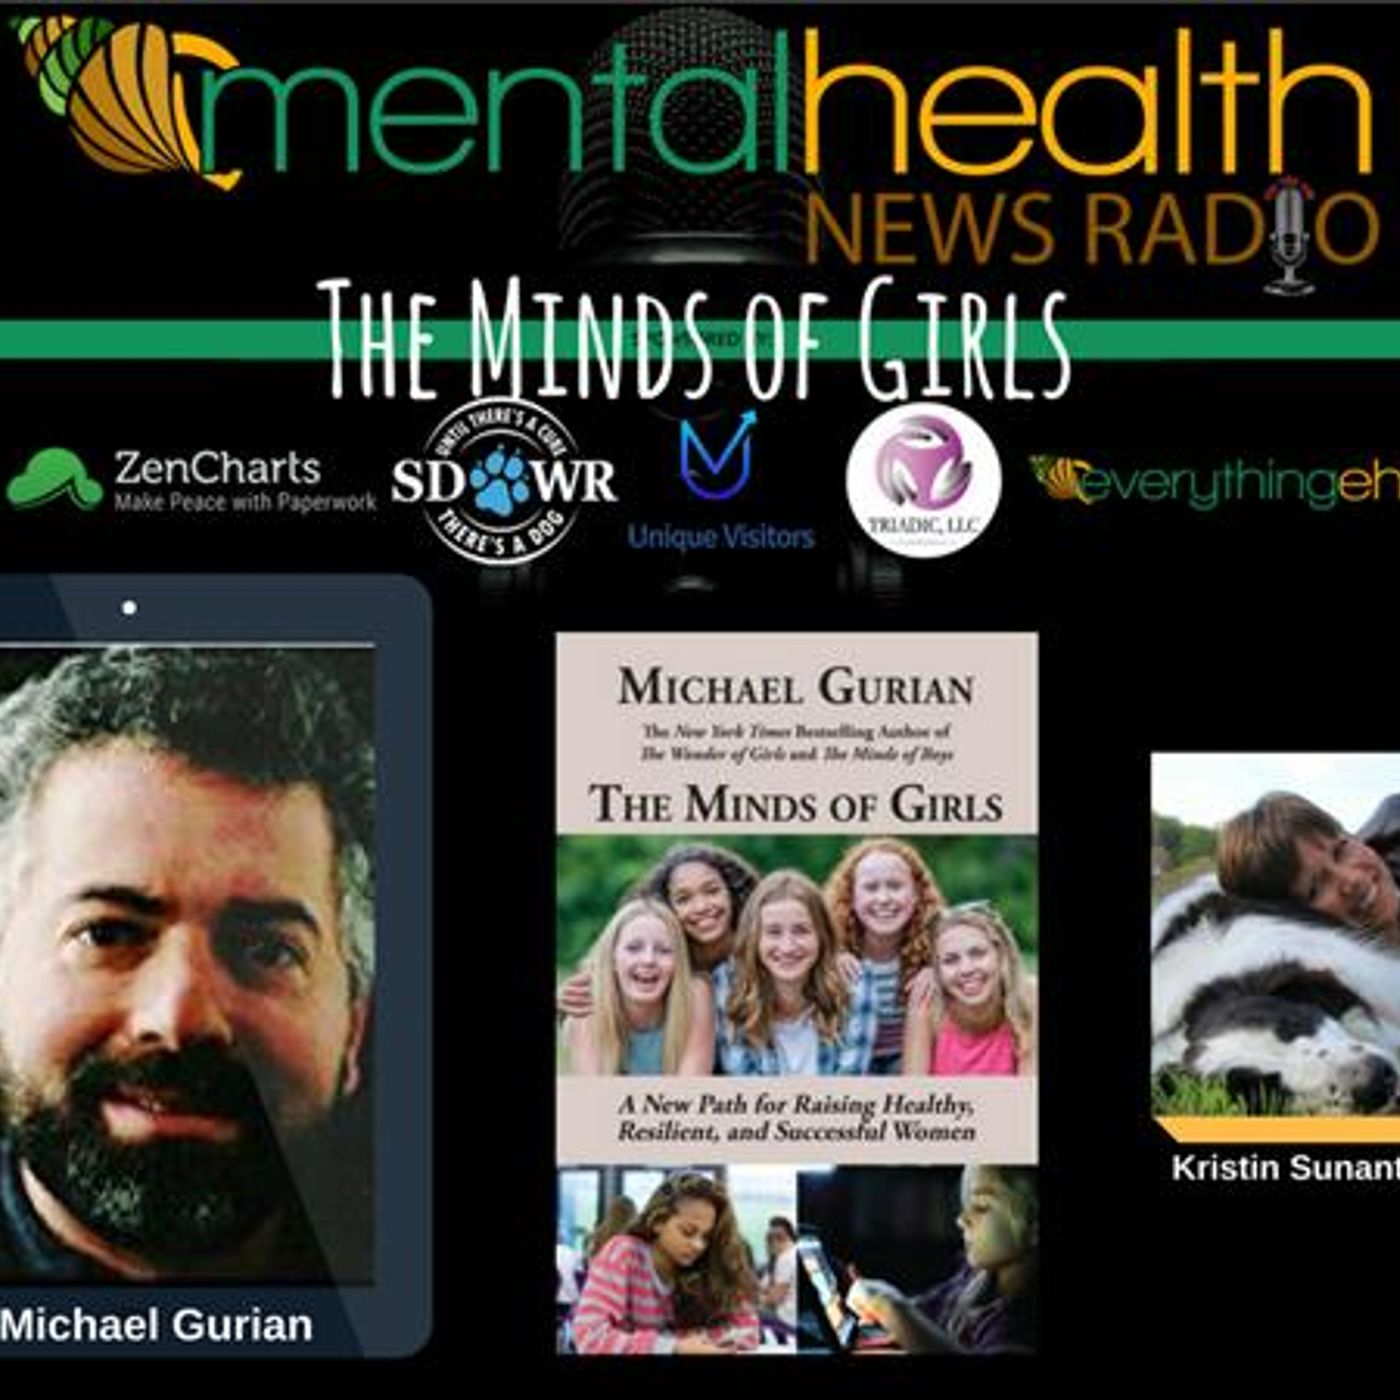 Mental Health News Radio - The Minds of Girls with Dr. Michael Gurian